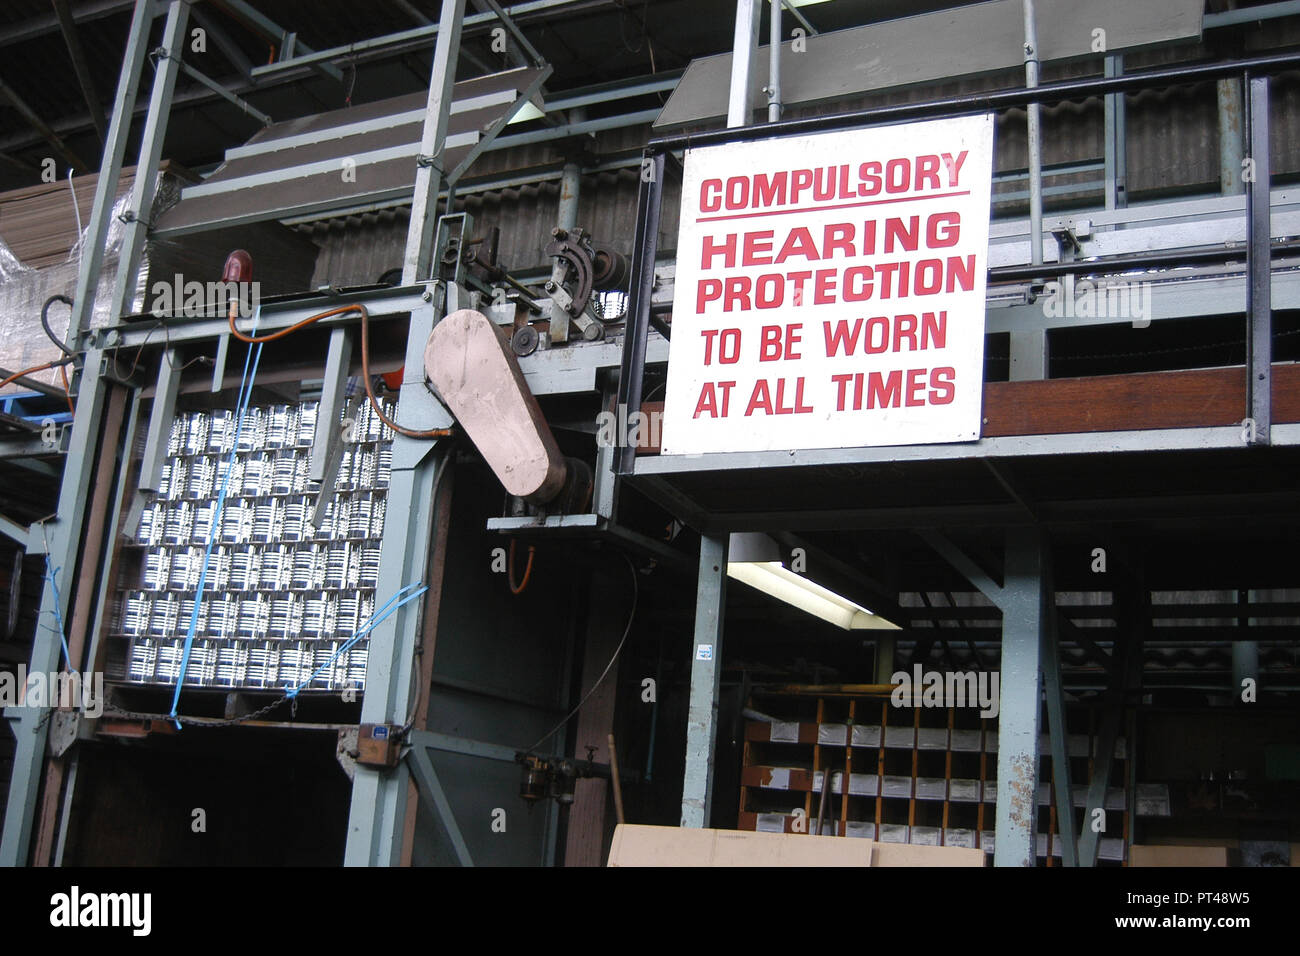 COMPULSORY HEARING PROTECTION SIGN IN A CANNERY FACTORY, TASMANIA. AUSTRALIA. - Stock Image